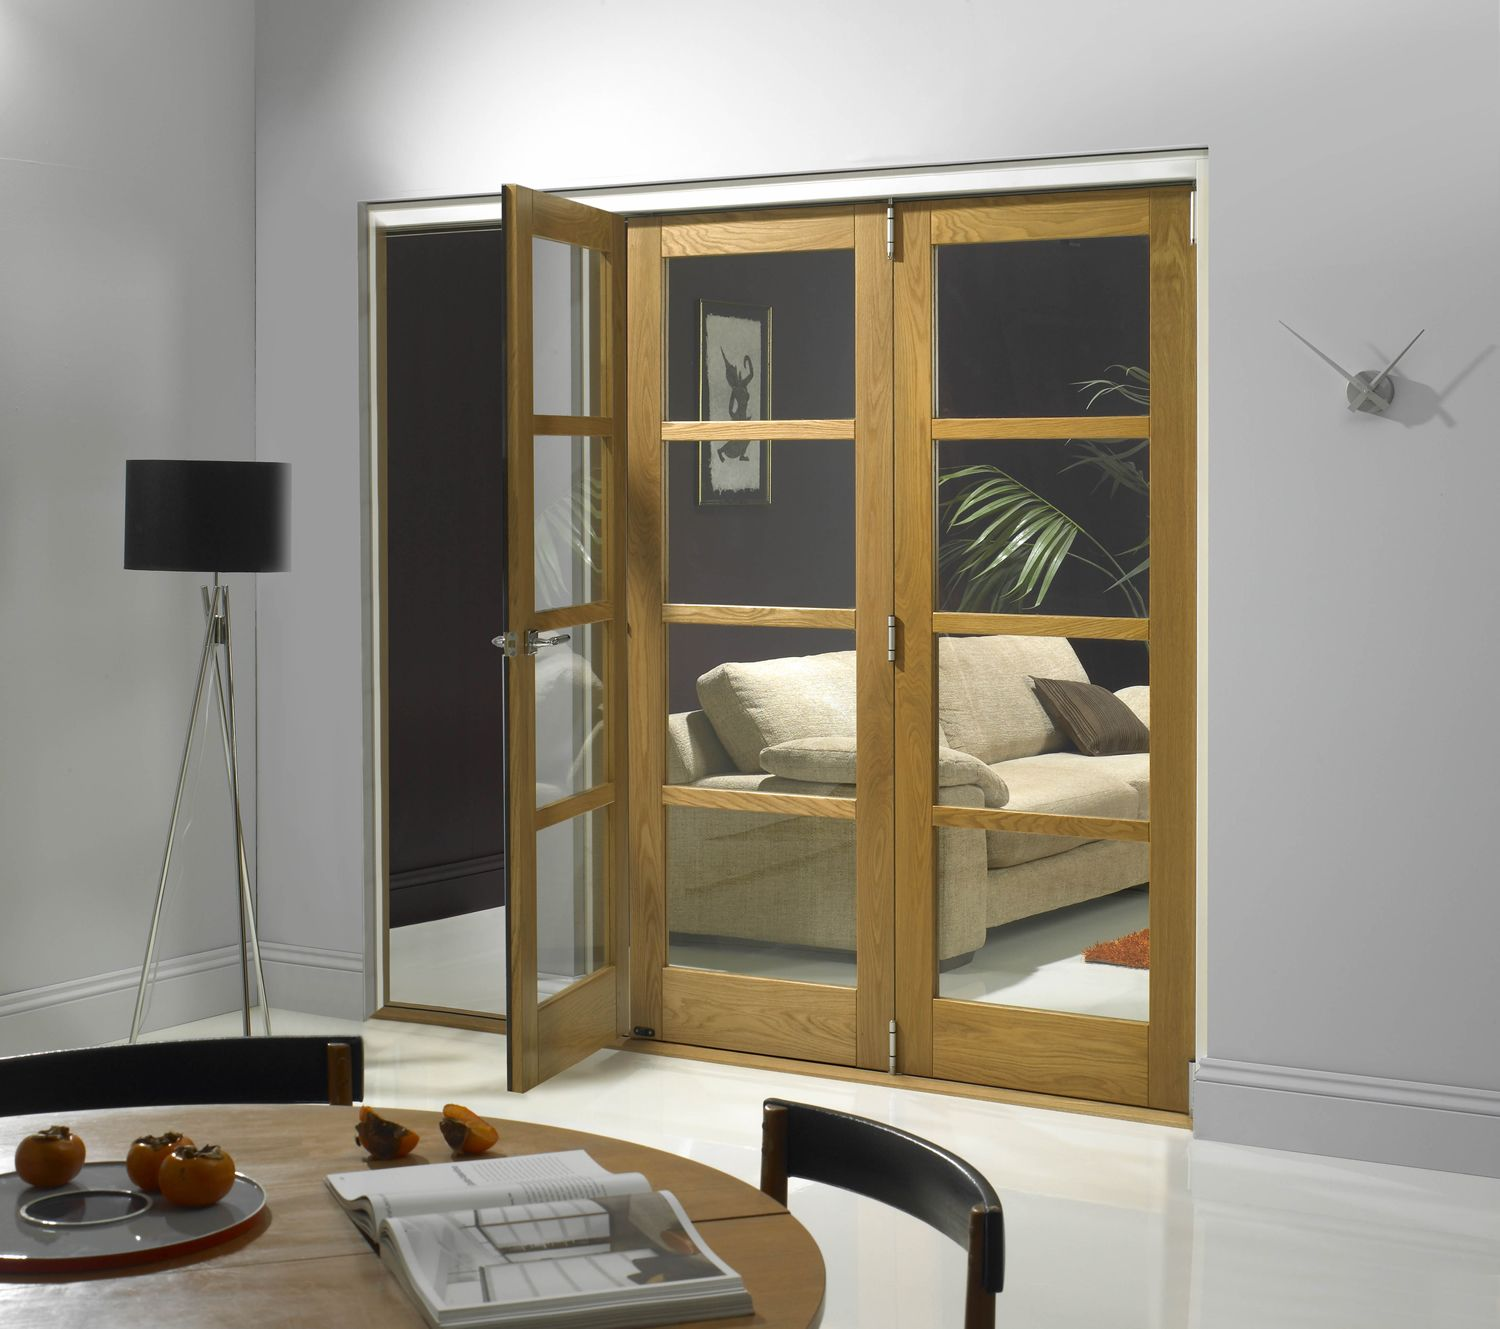 eye catching sliding room dividers clear glass wooden frames for